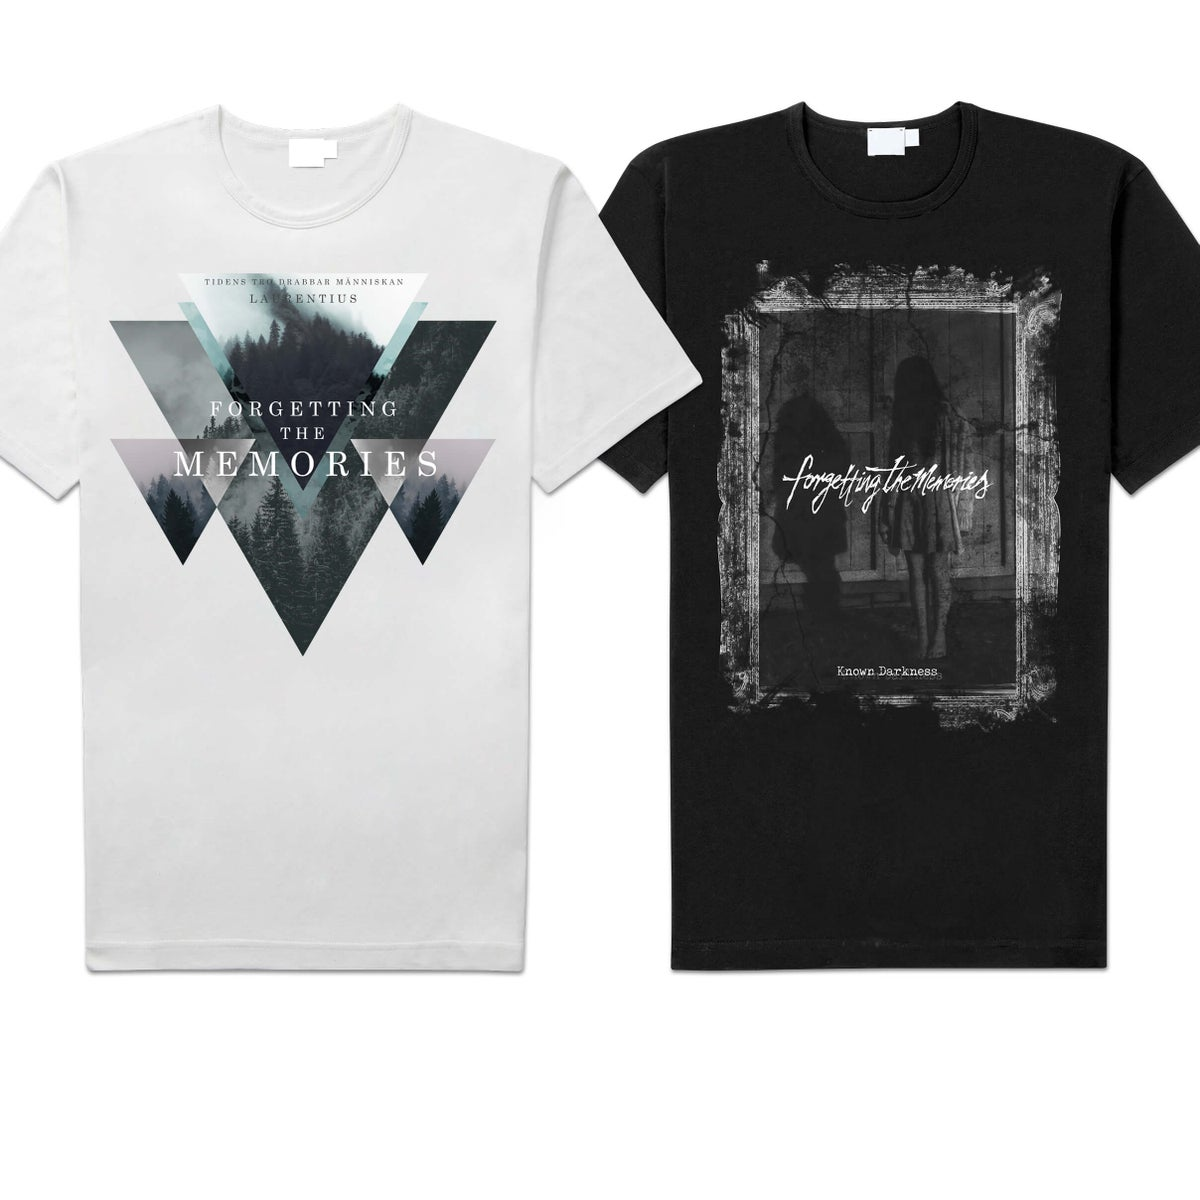 "Image of Forgetting The Memories ""Known Darkness"" / ""Laurentius"" Shirt"